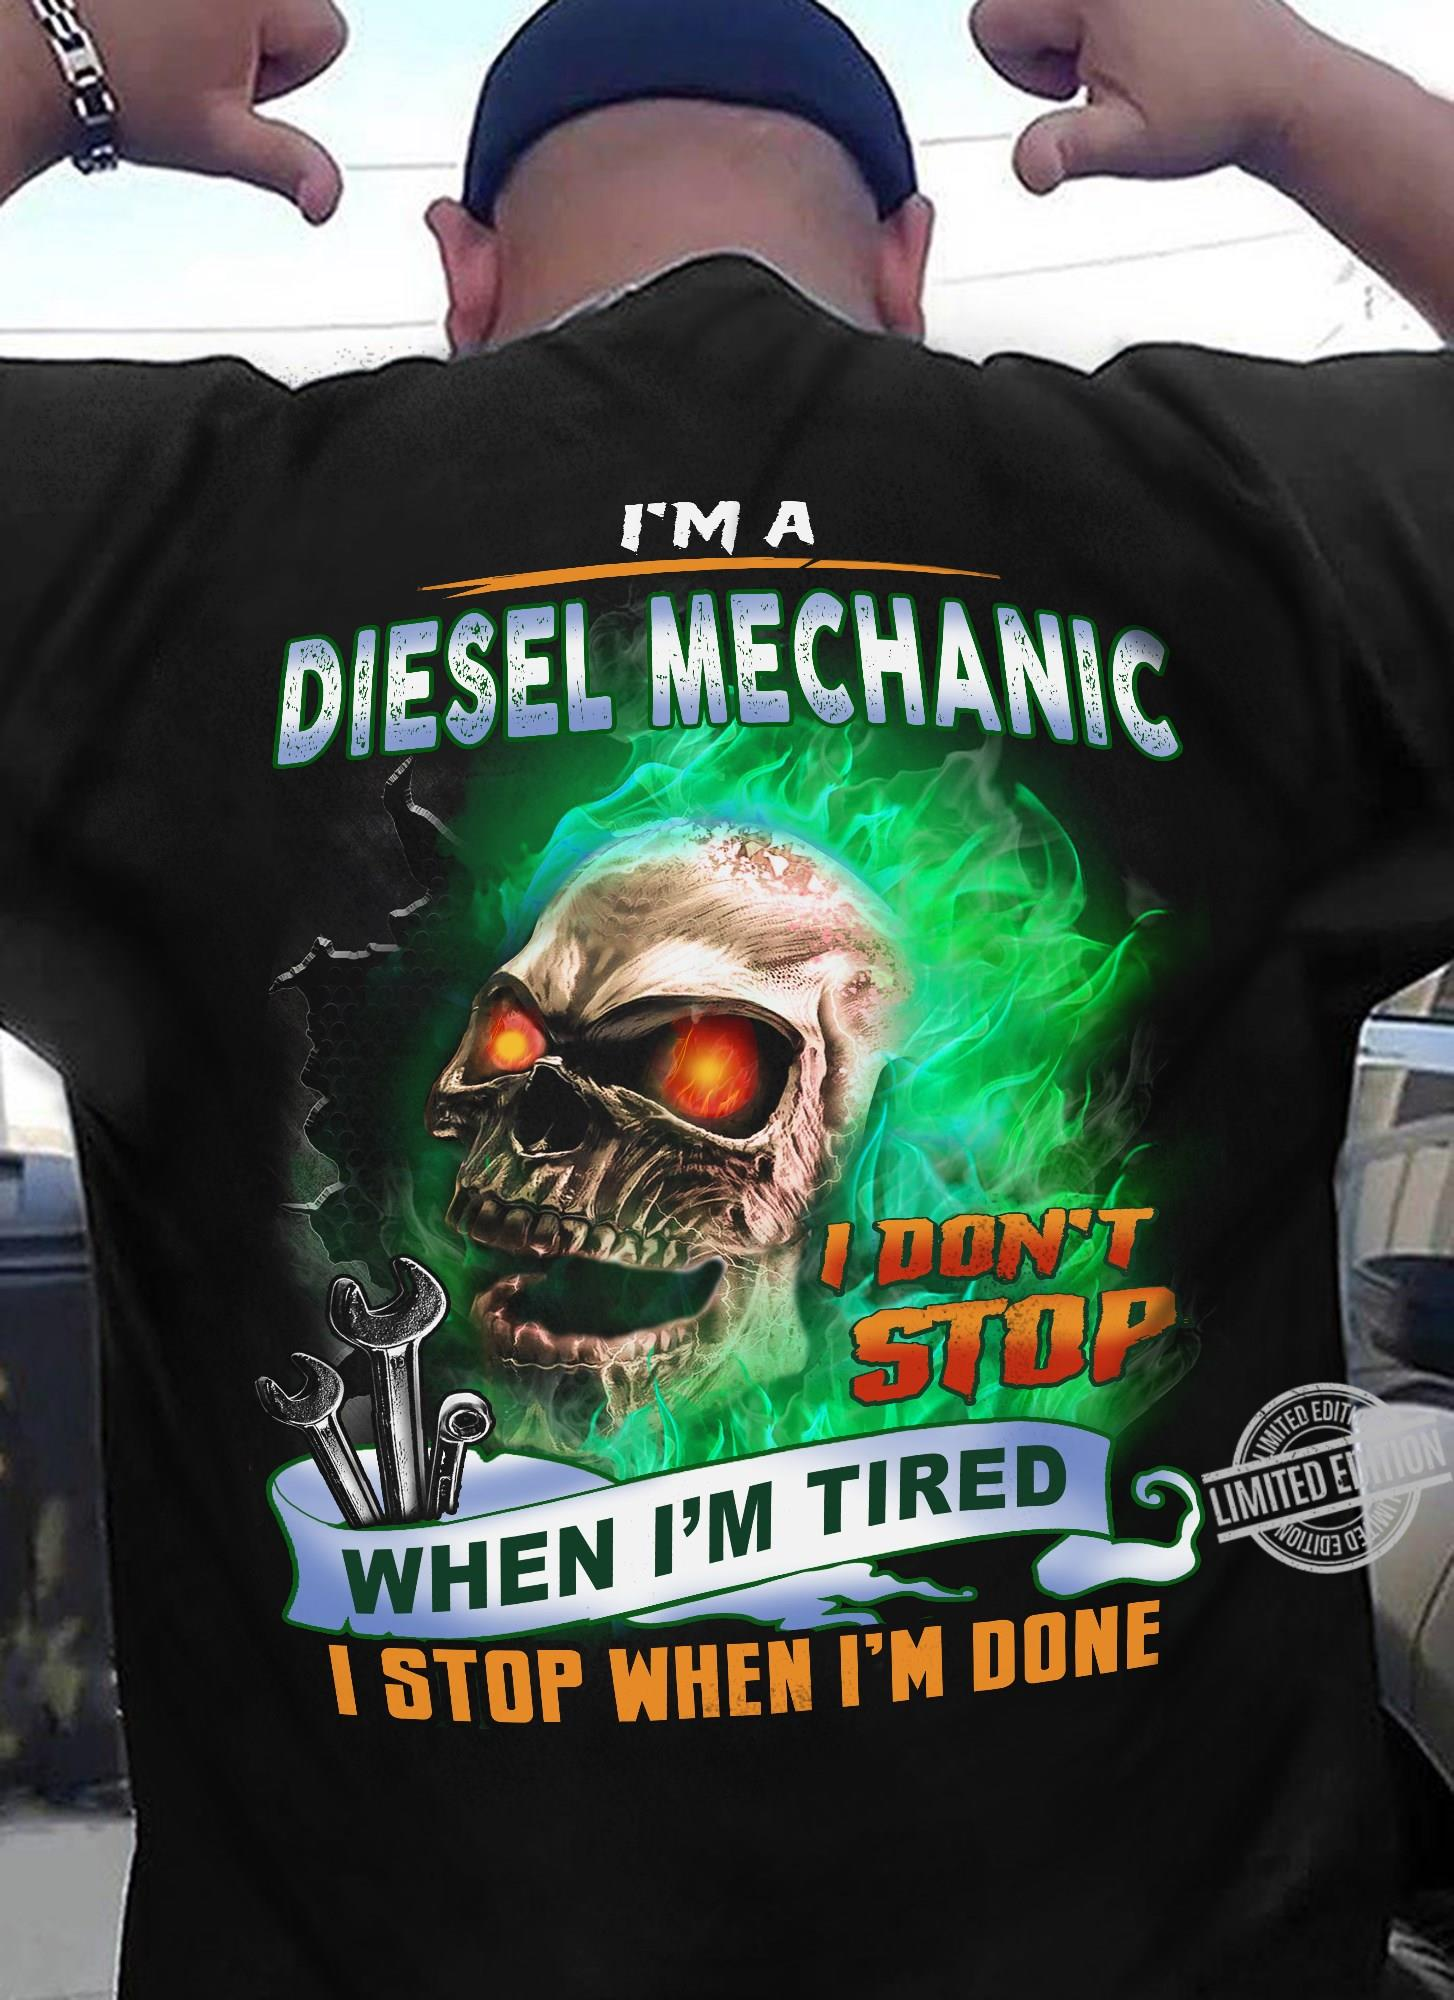 I'm A Diesel Mechanic I Don't Stop When I'm Tired Shirt